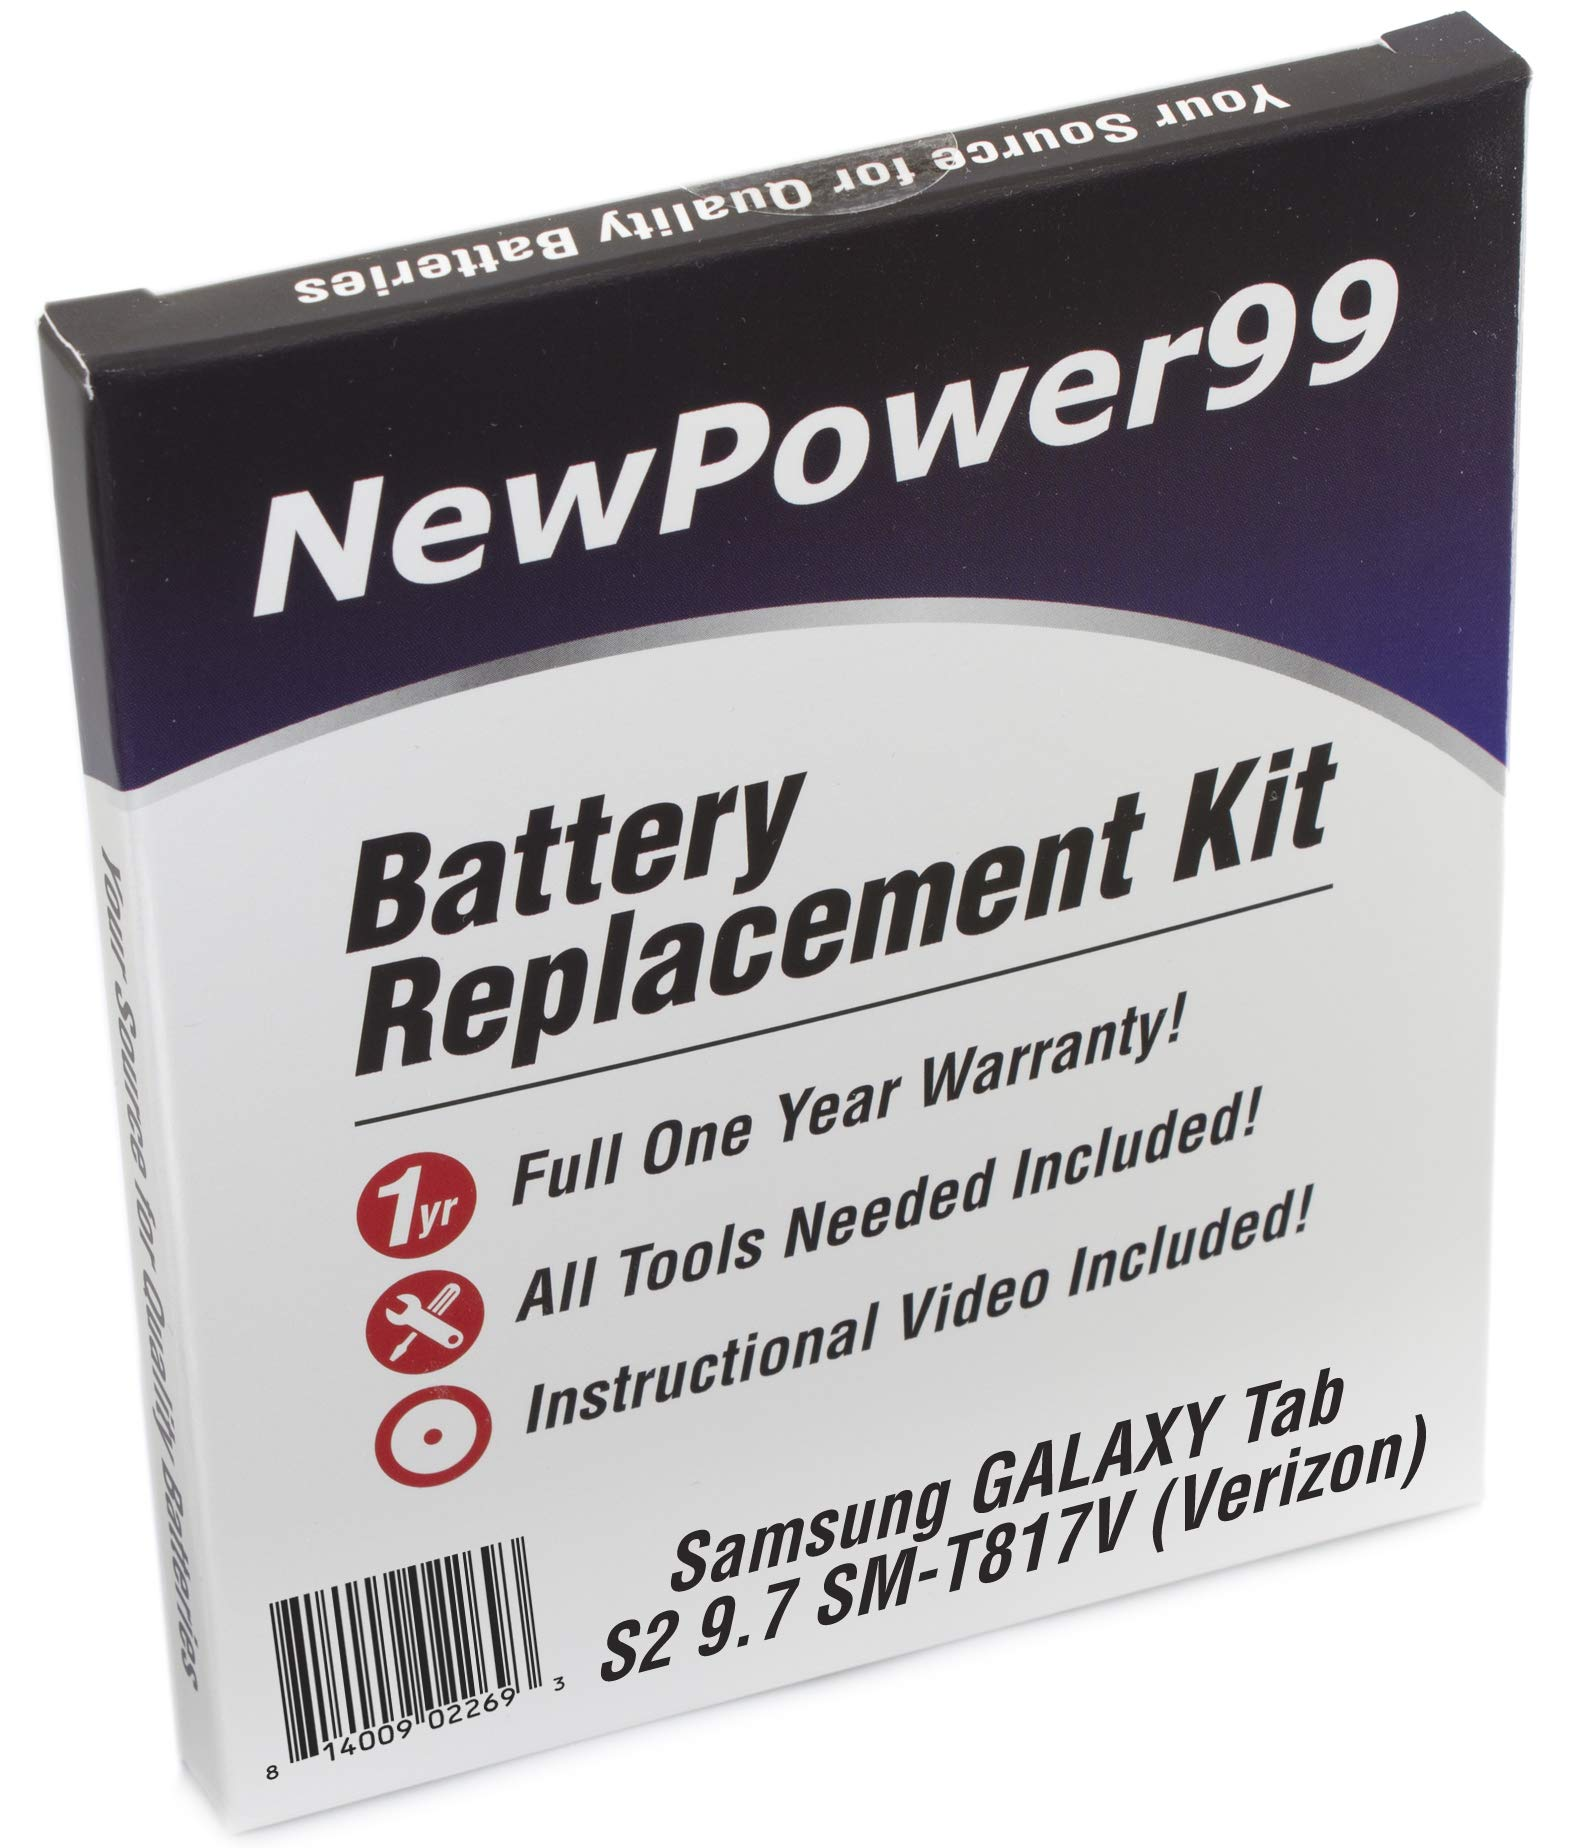 NewPower99 Battery Replacement Kit for Samsung Galaxy Tab S2 9.7 SM-T817V with Video Installation DVD, Installation Tools, and Extended Life Battery